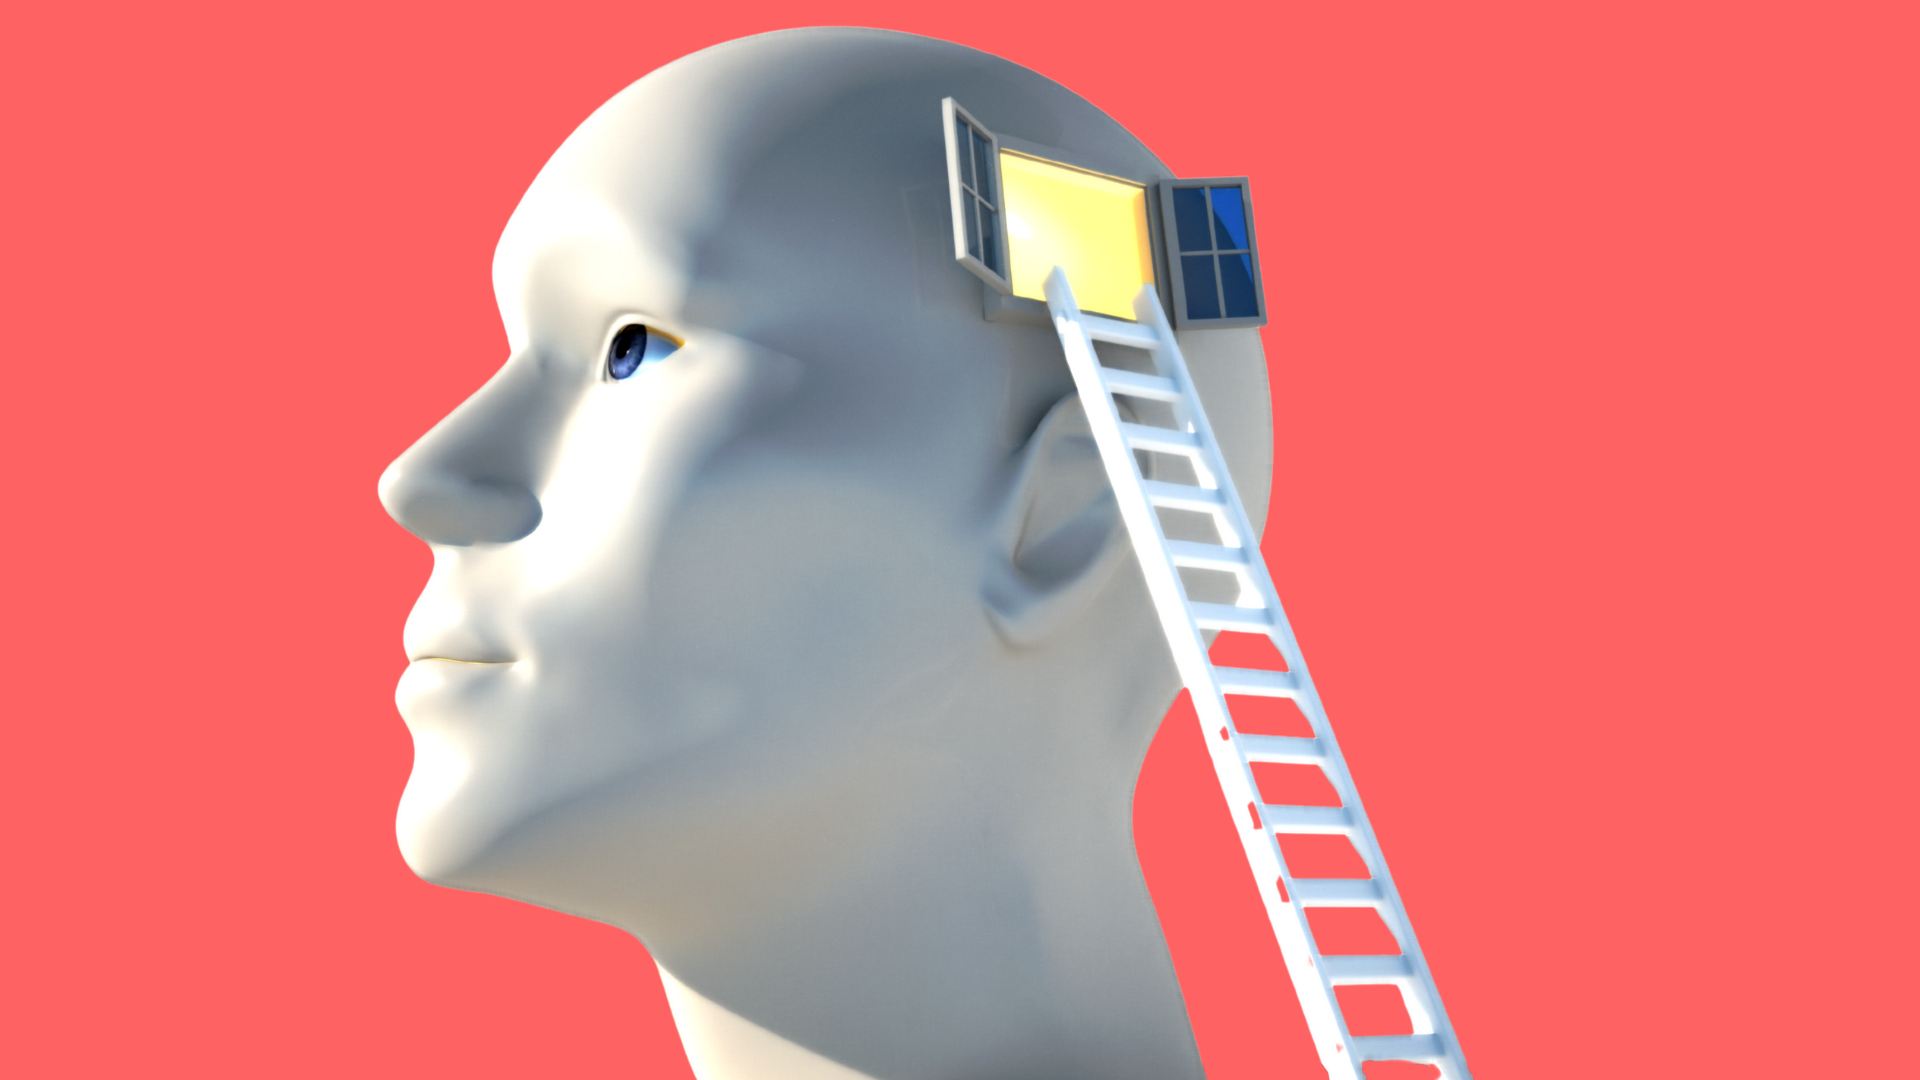 Image of a white mannequin head that has an open window on the side of the head and a ladder leaning up against it.